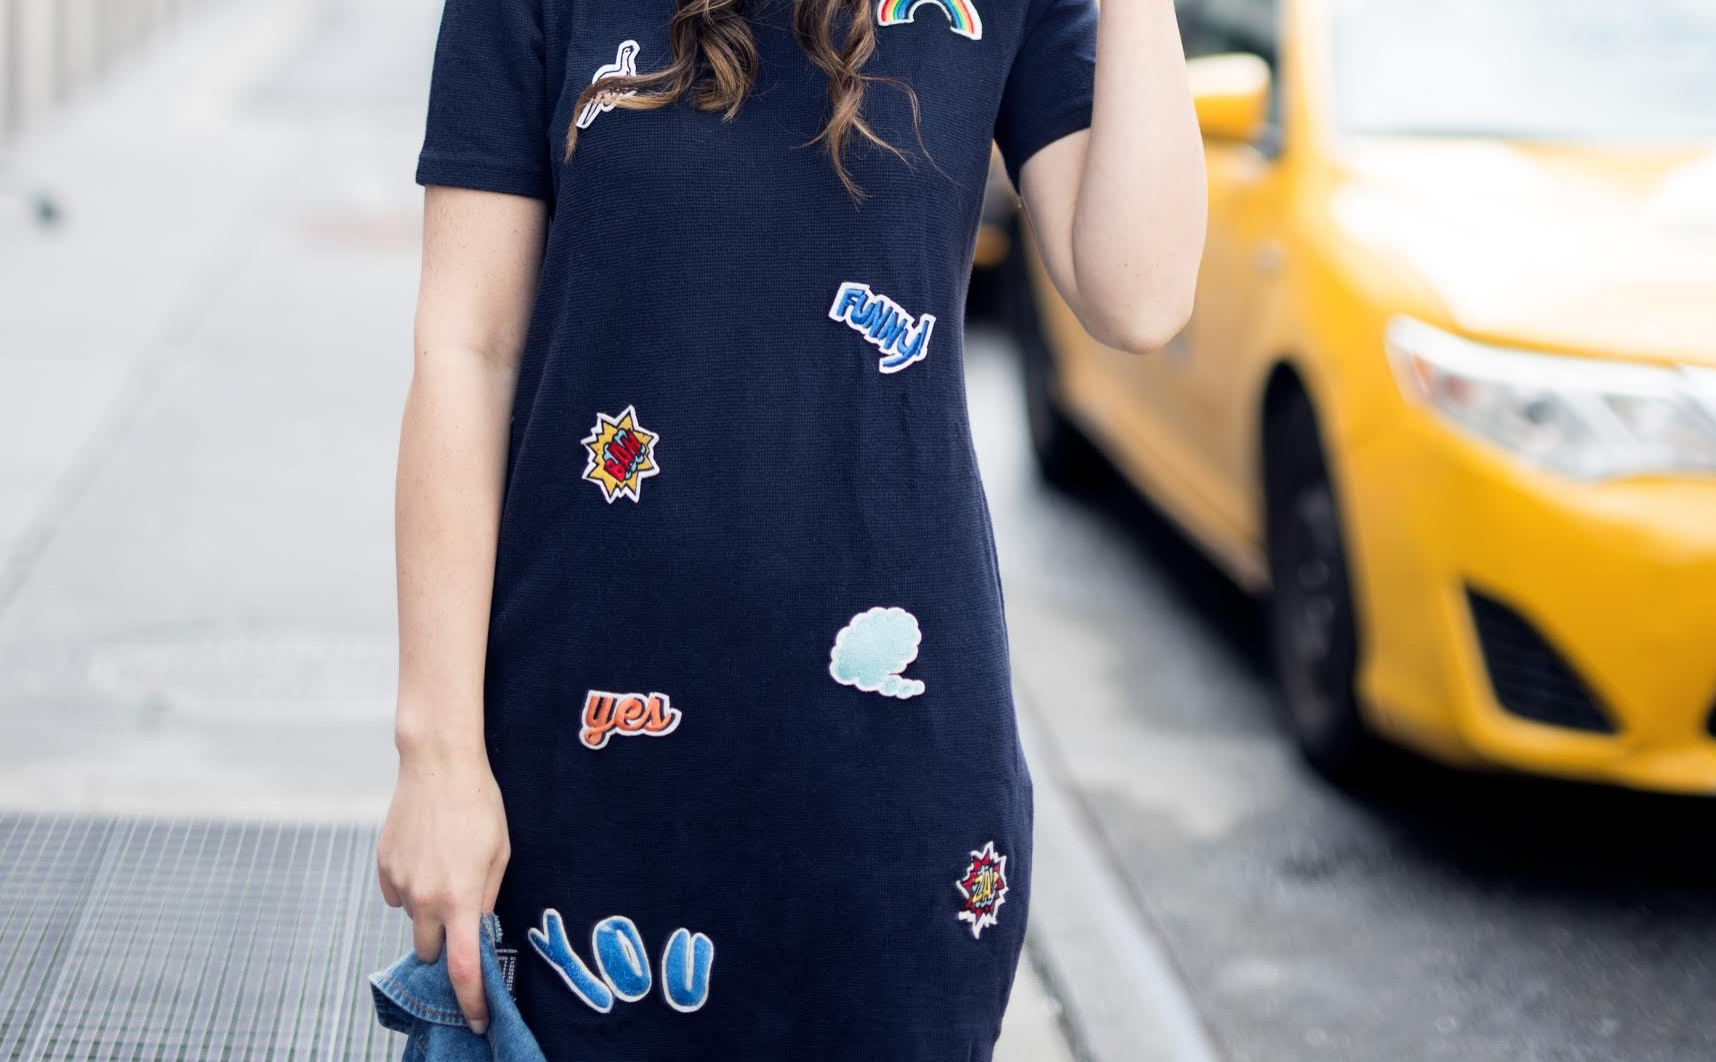 Patch Dress Cozy Payless Boots Louboutins & Love Fashion Blog Esther Santer NYC Street Style Blogger Outfit OOTD Trendy Hair Model Girl Women Online Shopping City Lifestyle Navy Jean Denim Jacket Zara Forever 21 Fur Affordable Budget Friendly Winter.jpg